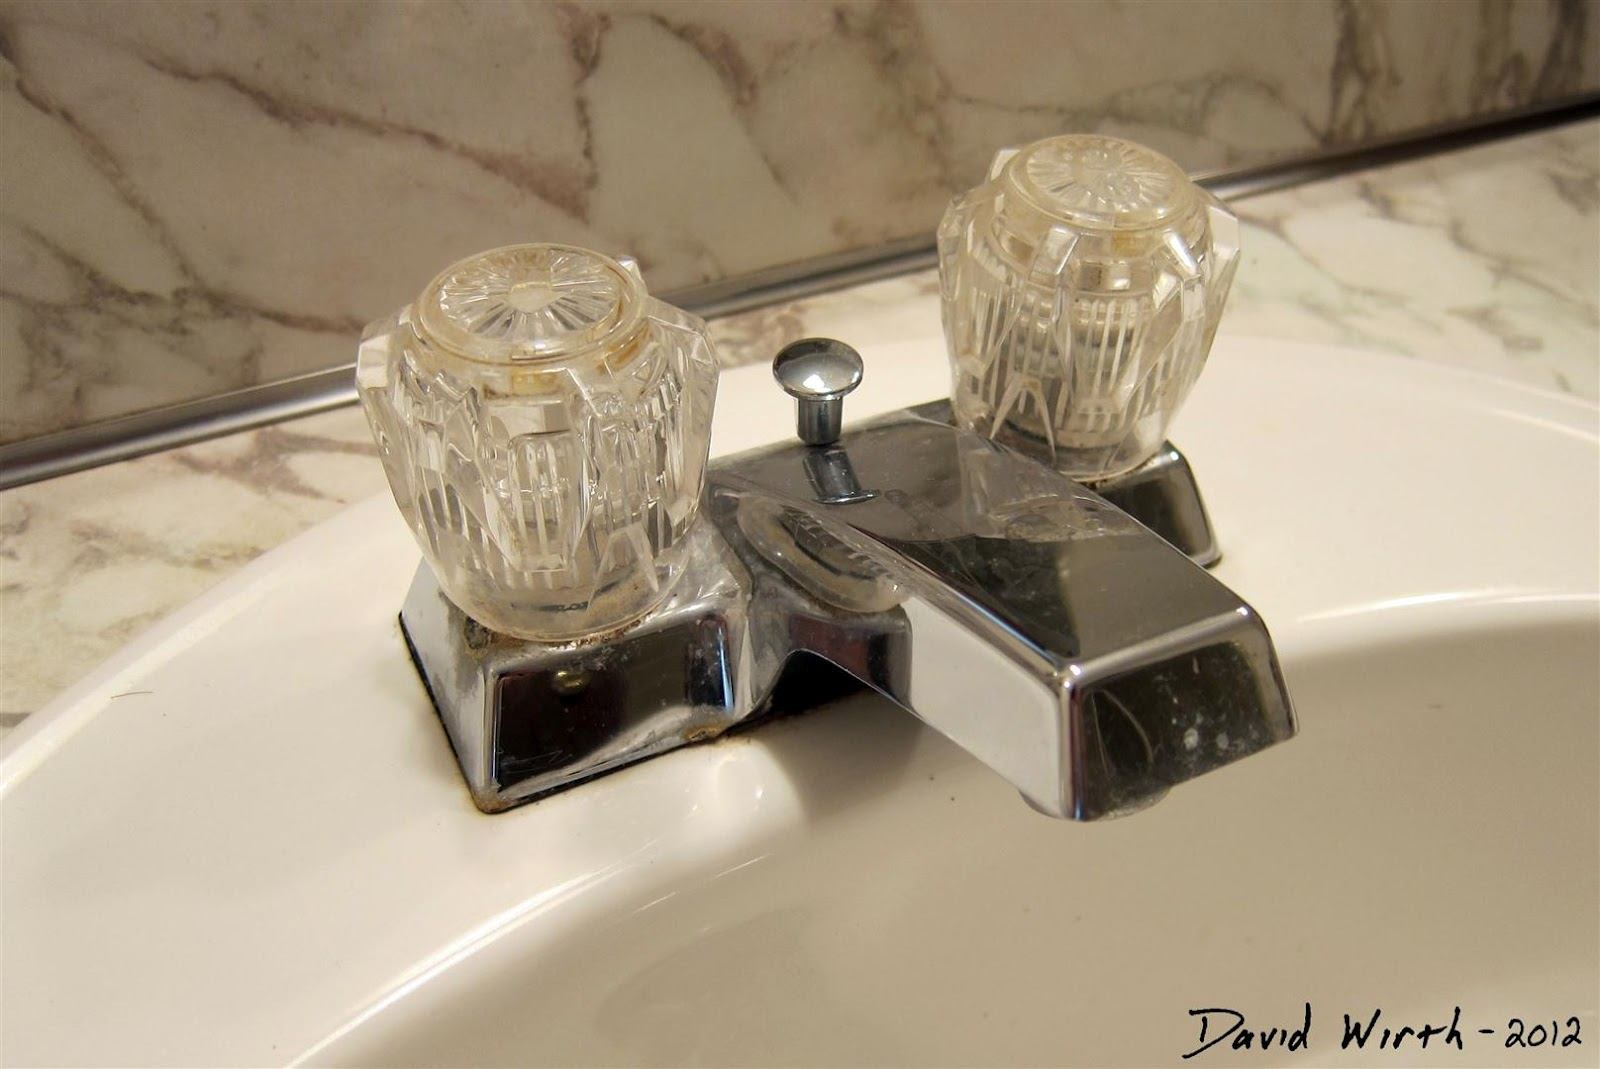 Bathroom Sink - How to Install a Faucet on change kitchen faucet, change bathroom sink pipes, change single hole sink faucet, change bathtub faucet,